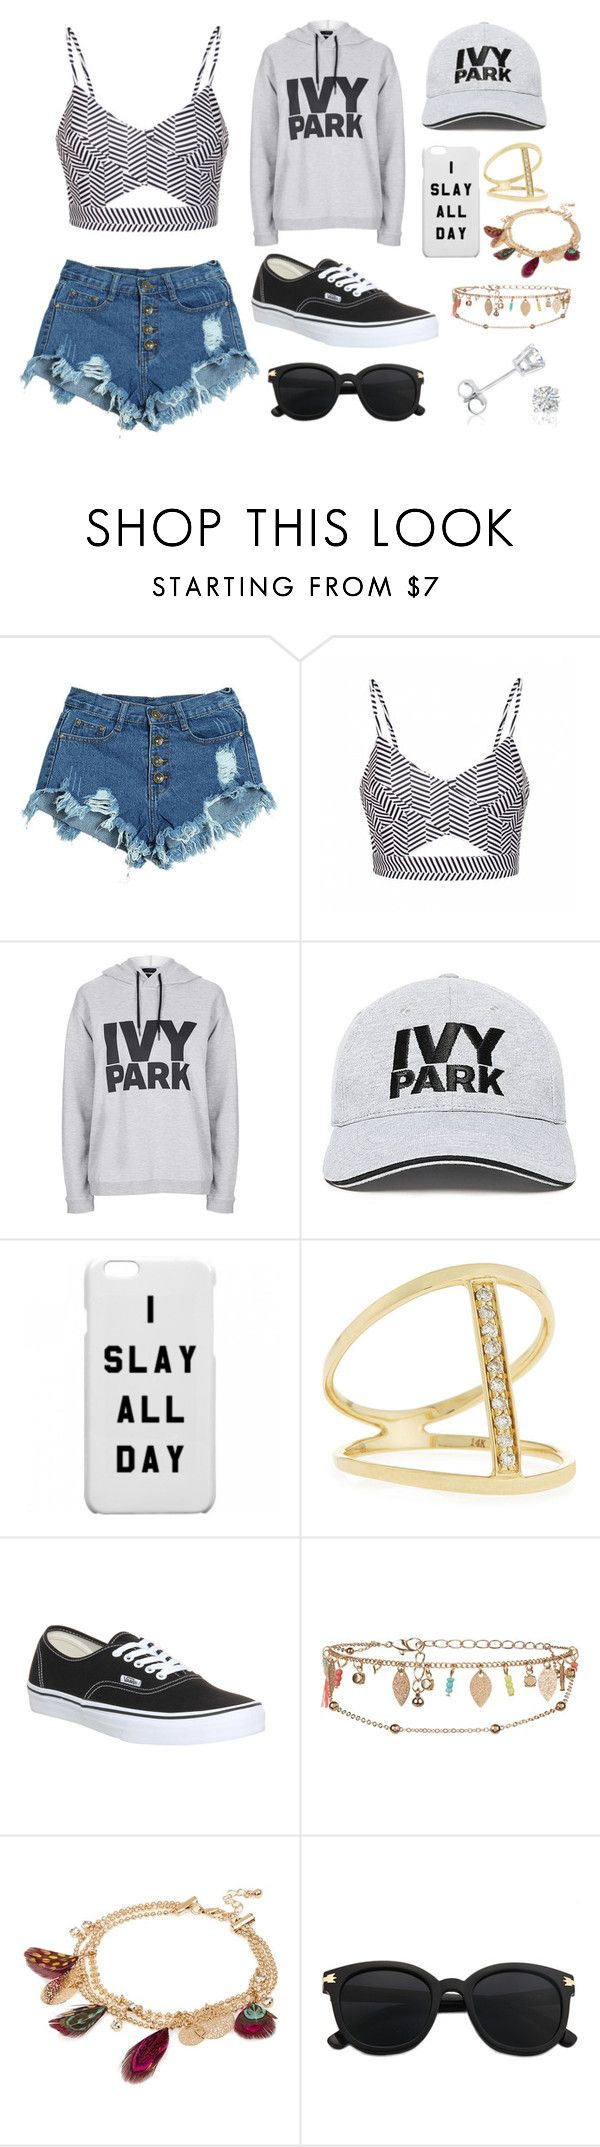 Outfit 21 by sarahcb2002 on Polyvore featuring Topshop, Ally Fashion, WithChic, Vans, Sydney Evan, Amanda Rose Collection, River Island, New Look and Ivy Park